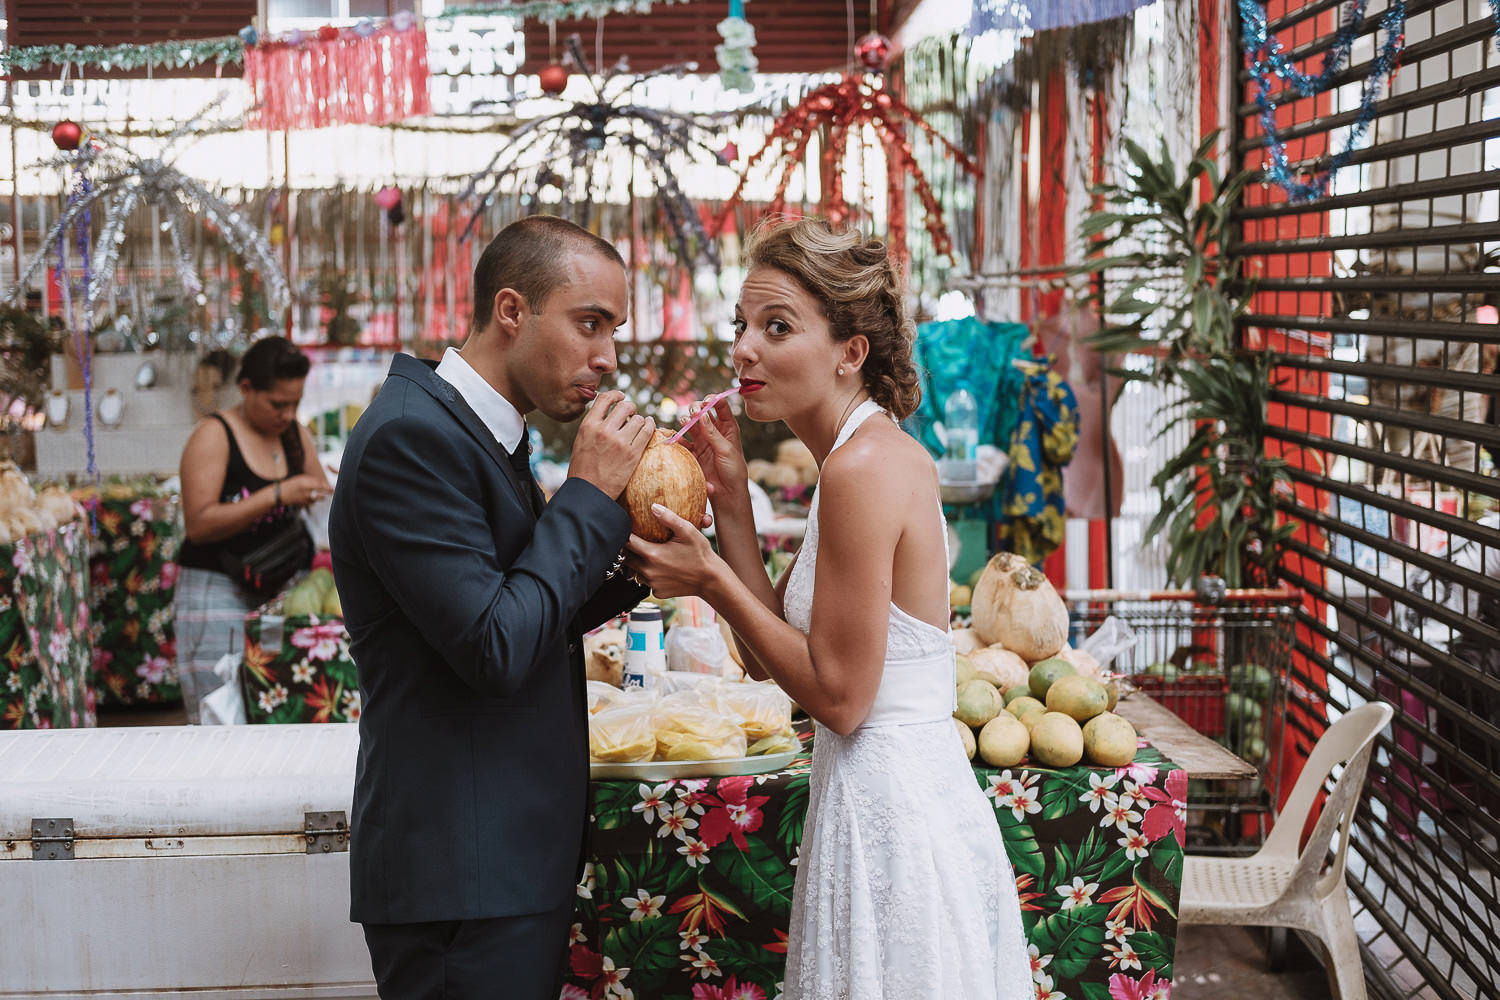 bride and groom sharing a drink from a coconut at tahiti markets